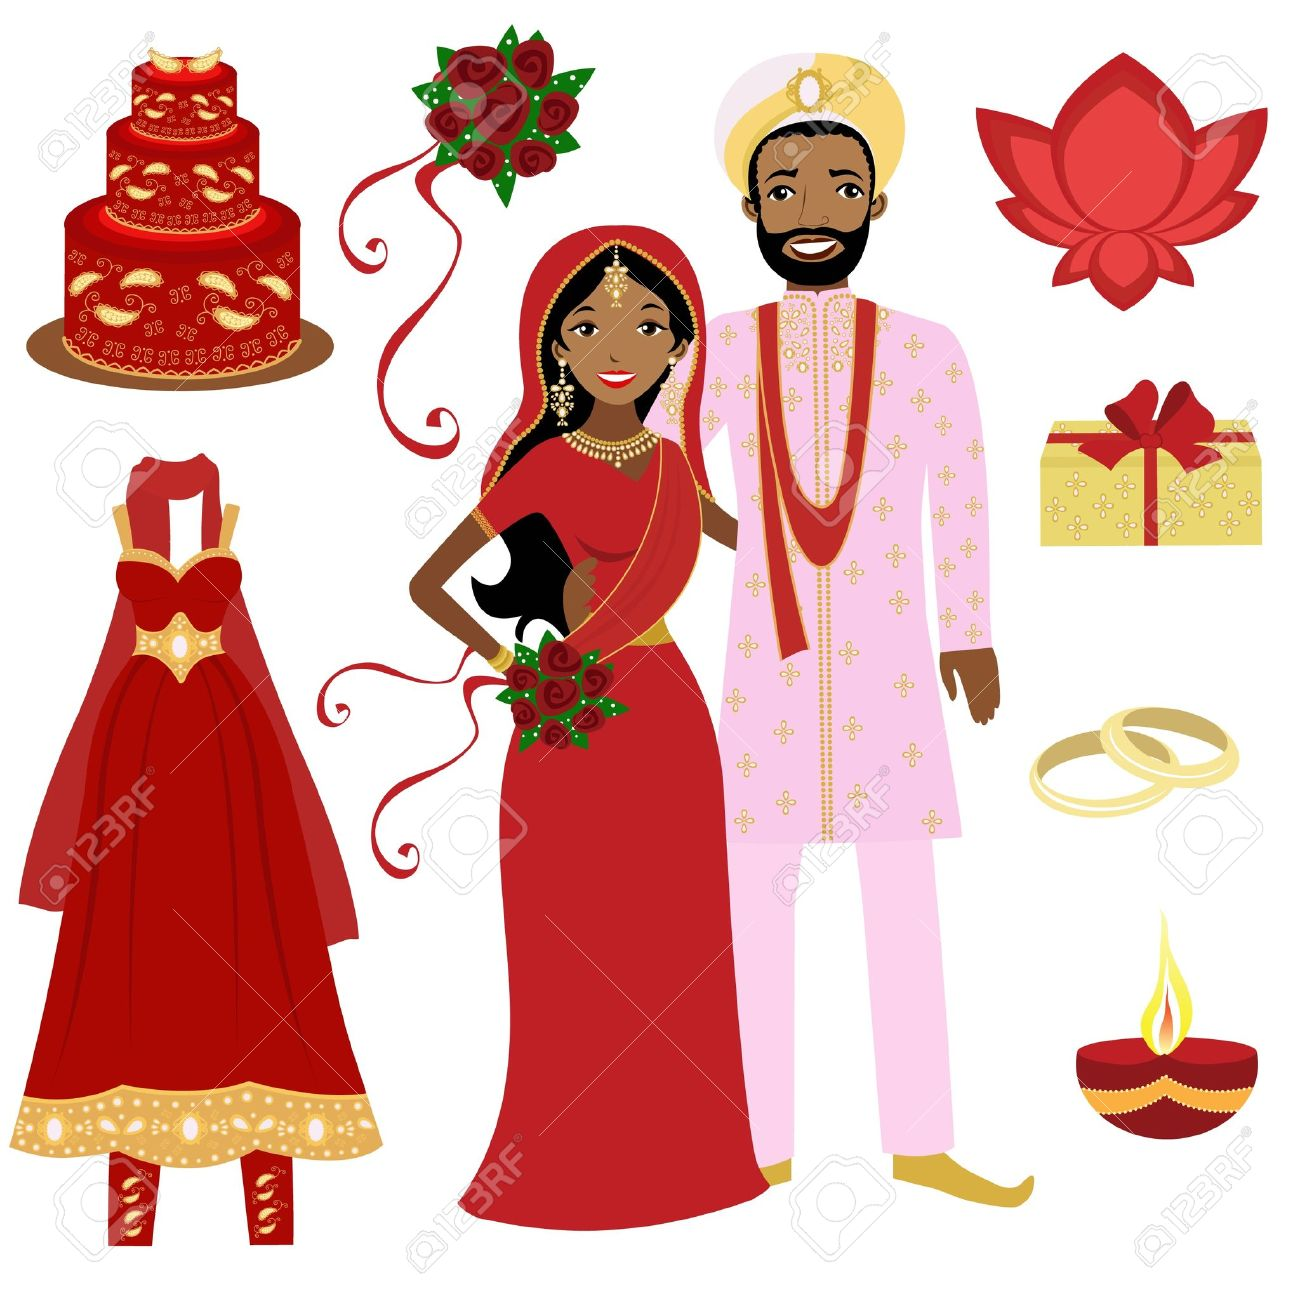 Indian bridegroom clipart 9 » Clipart Station.